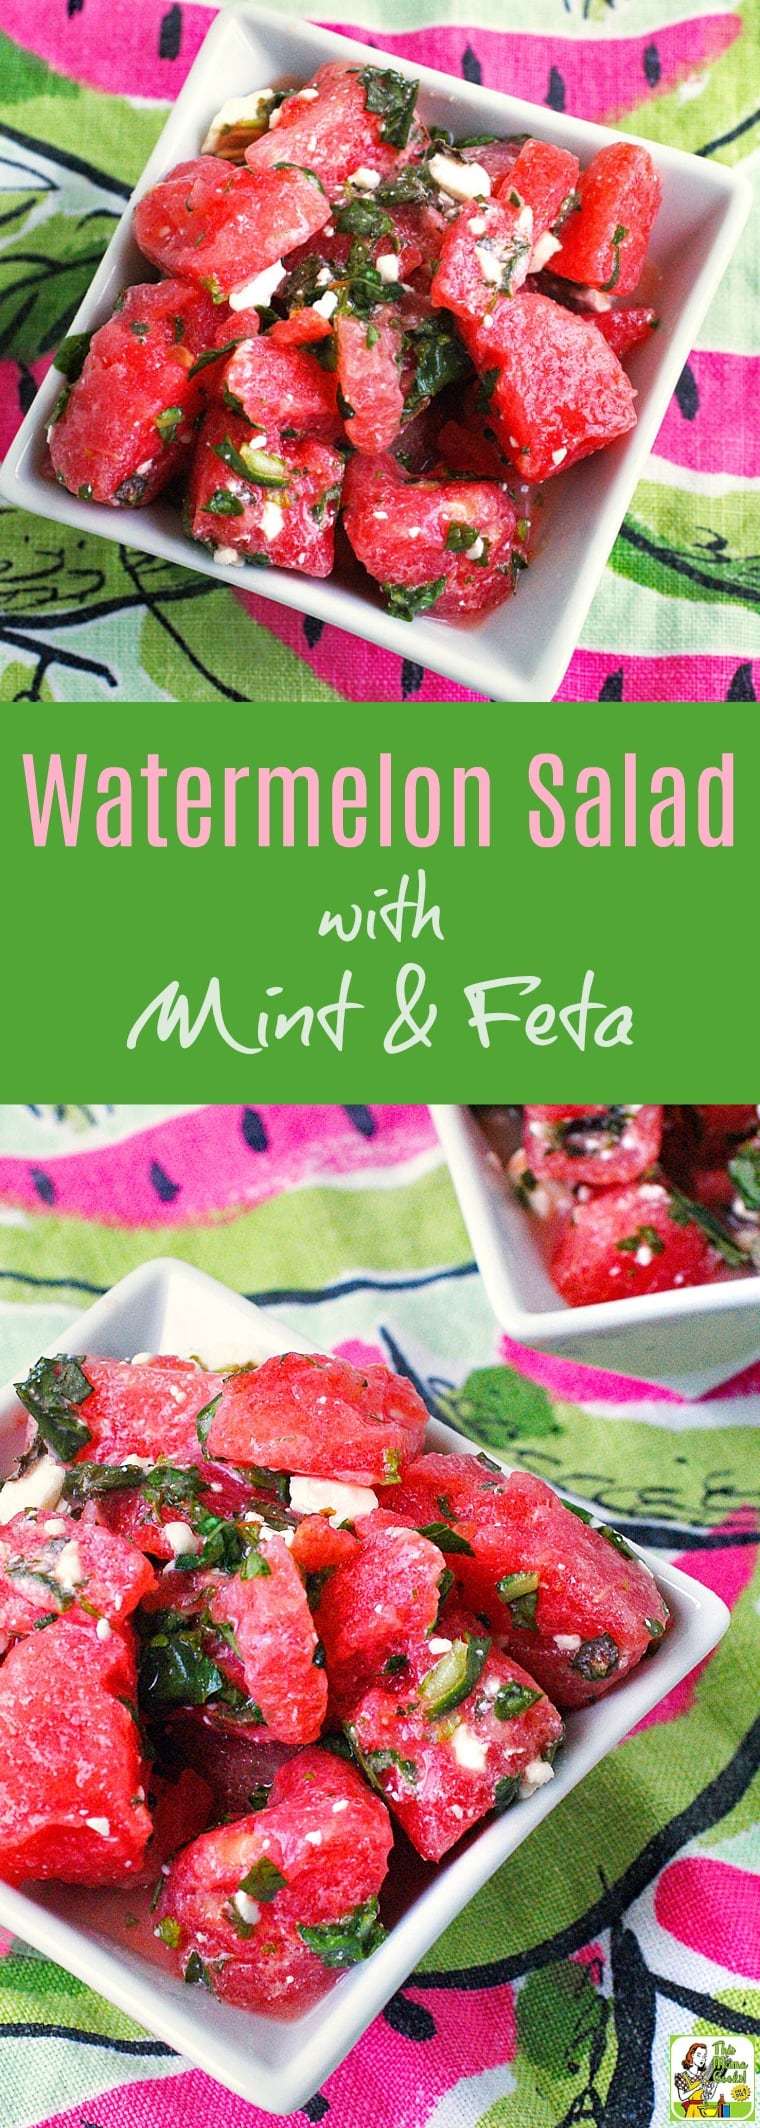 Watermelon Salad with Mint & Feta is the ideal fruit salad to serve at a cookout or to bring to a potluck party. Click to get this easy, gluten free watermelon salad recipe. #salad #watermelon #healthyrecipe #easyrecipe #vegetarian #feta #glutenfree #fruitsalad #fruit #mint